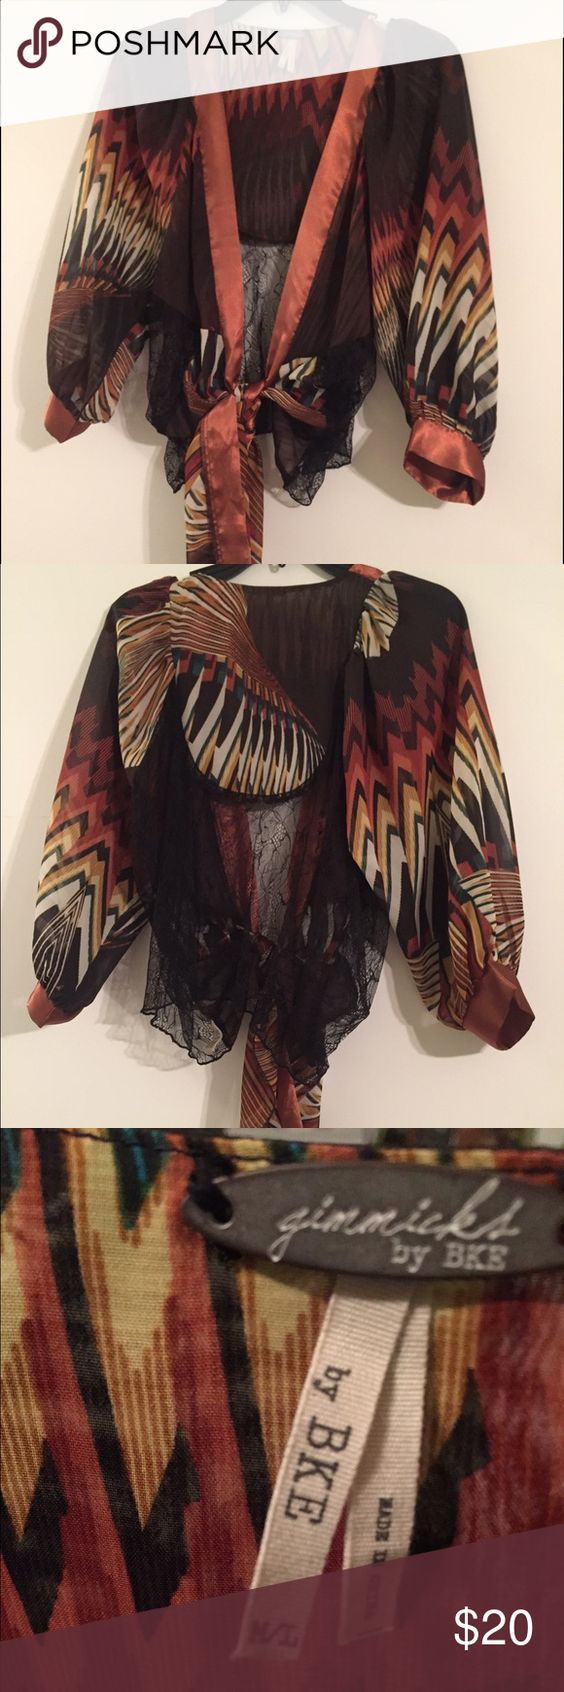 Gimmicks by BKE top Beautiful top by BKE, beautiful gold, Browns, blacks with lace that can be worn over a camisole and would dress be great to dress up jeans. BKE Tops Blouses